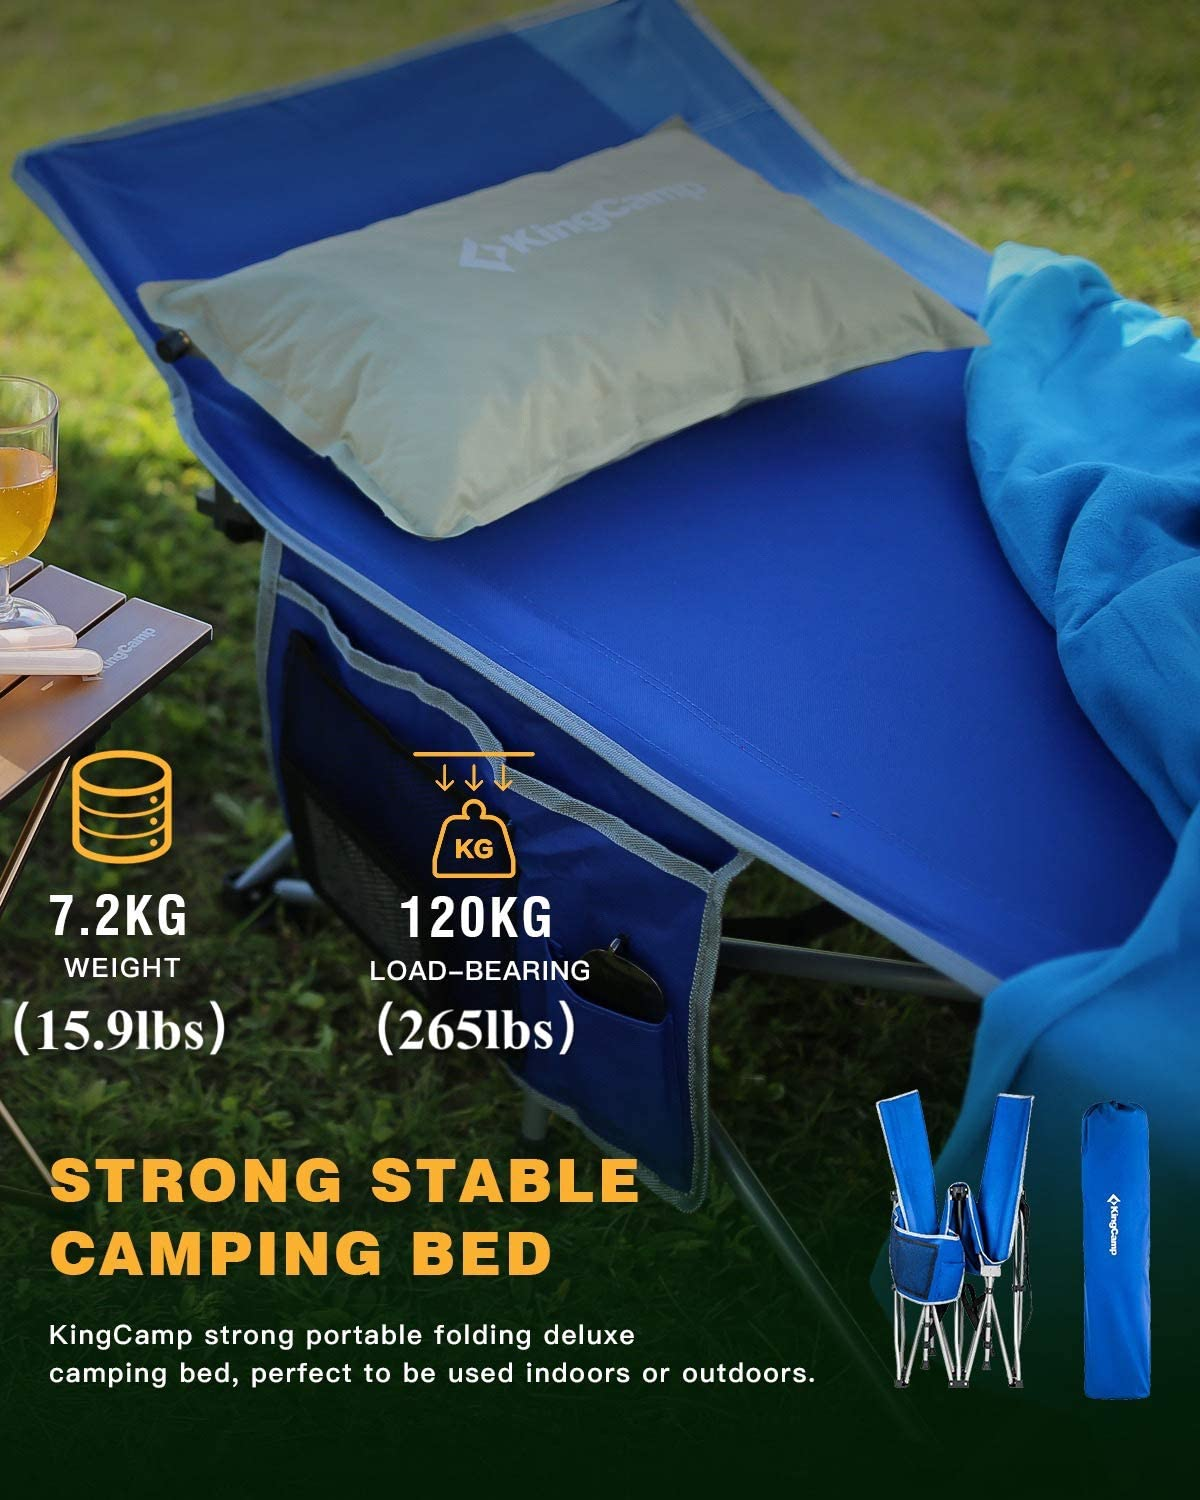 KingCamp Camping Cot with 3-in-1 Pockets for Adults Lightweight Portable Strong Stable Deluxe Folding Single Person Bed for Indoor /& Outdoor Use